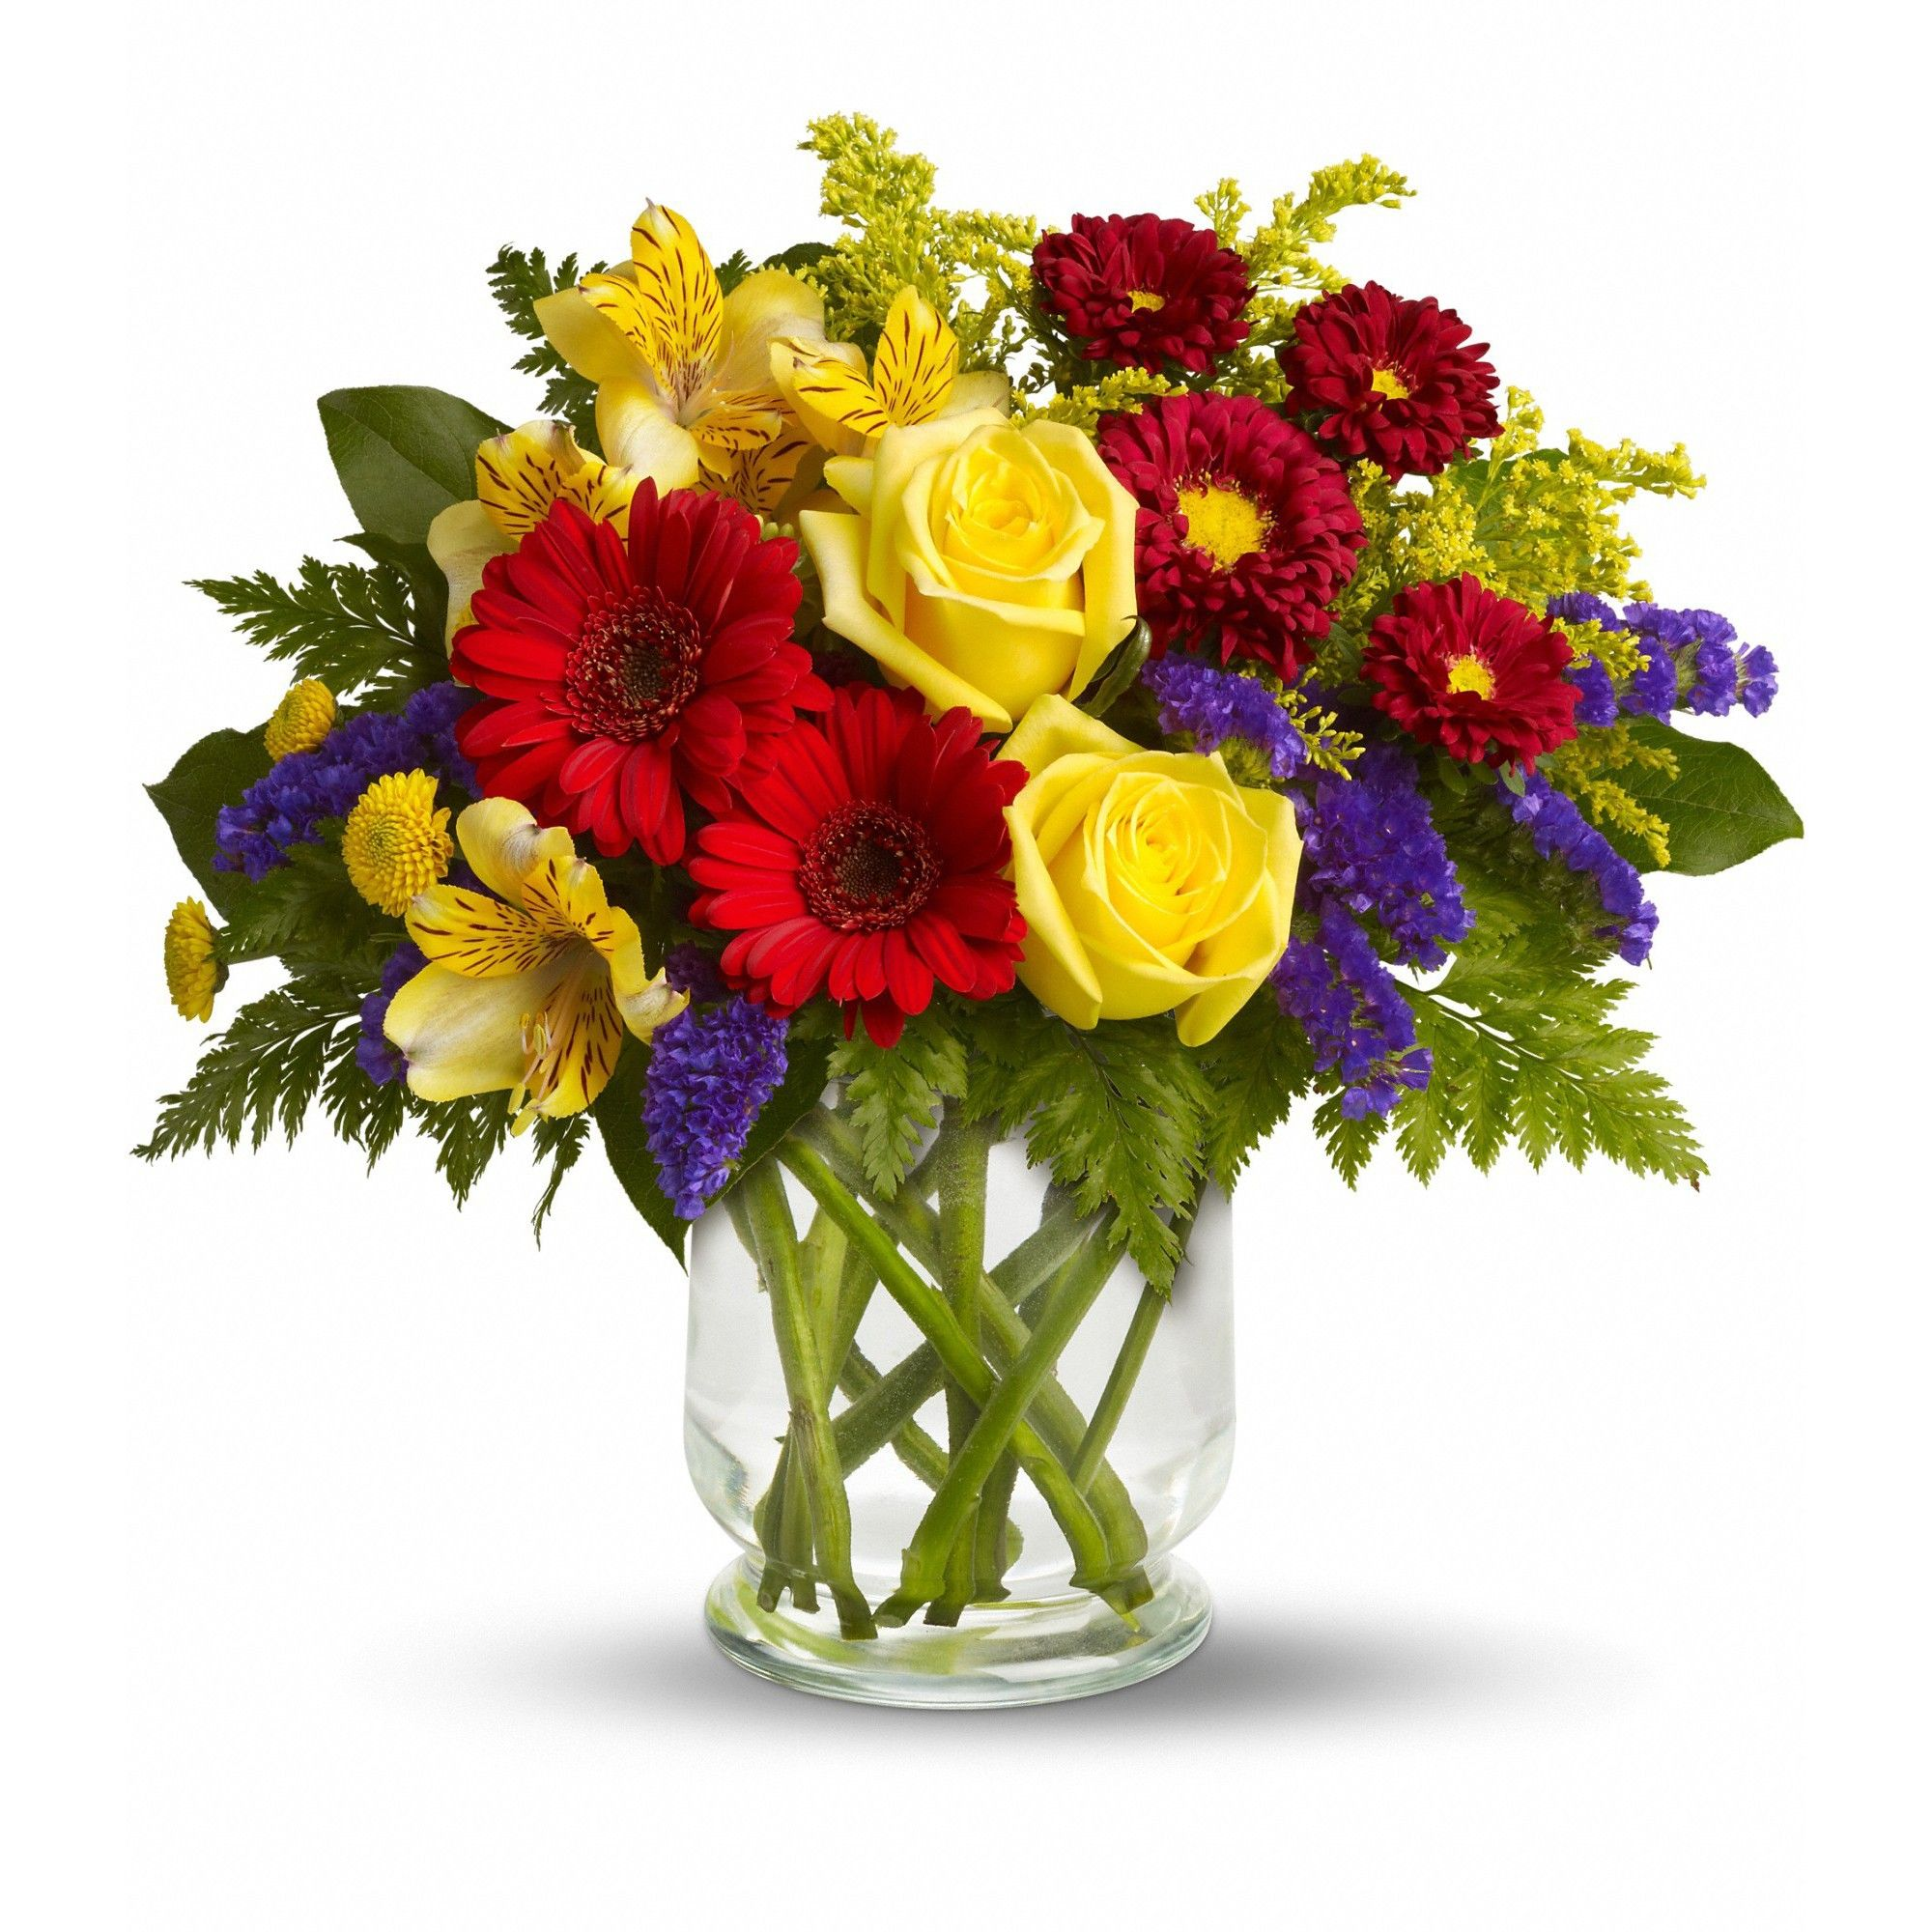 12 beautiful flower bouquets 12 gynyr virgcsokor megaport 12 beautiful flower bouquets 12 gynyr virgcsokor megaport media izmirmasajfo